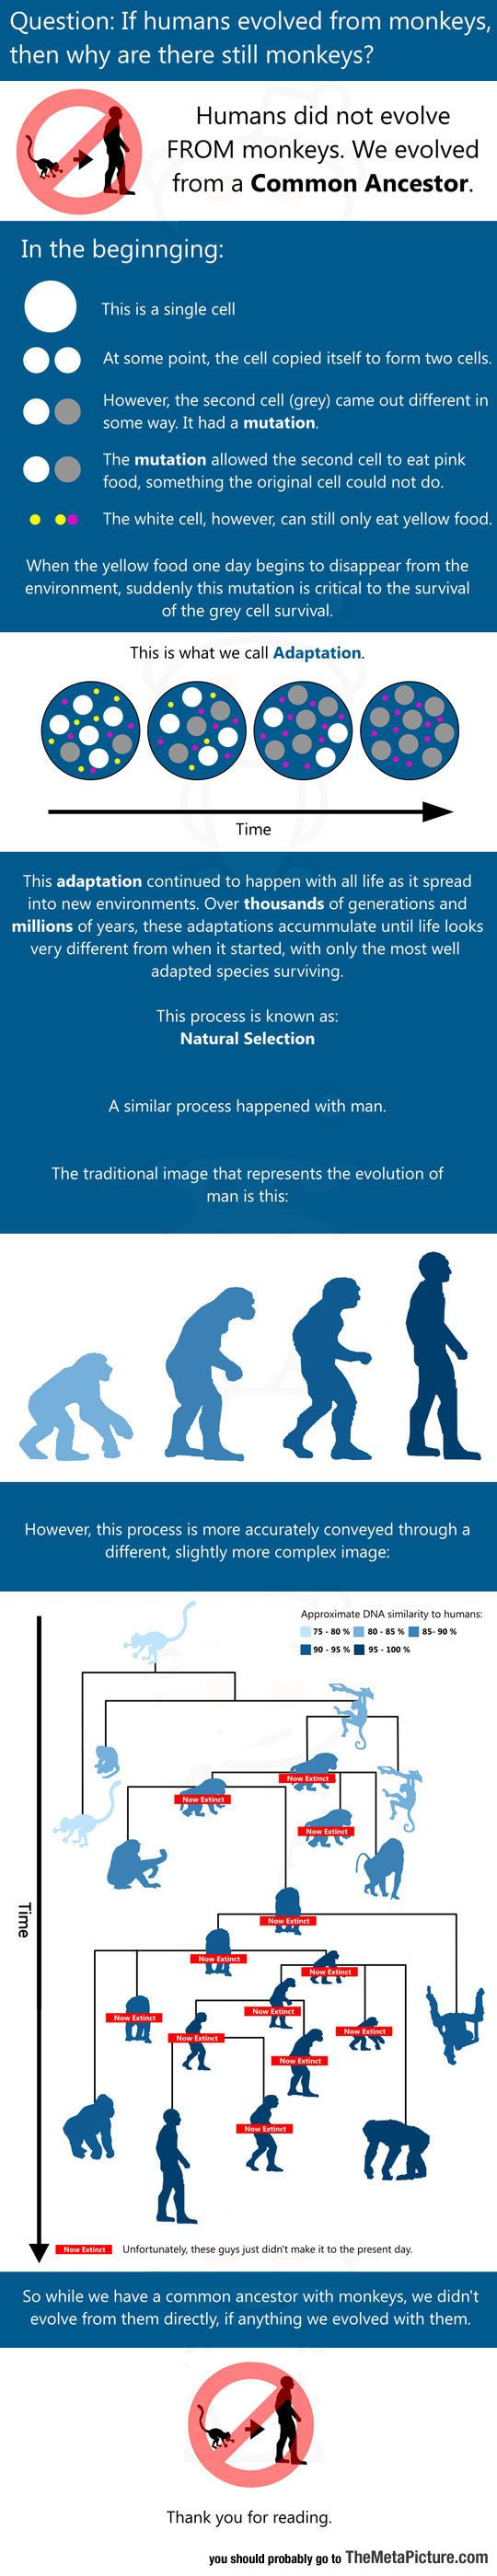 best images about student stuff writing an essay for those who believe humans evolved from monkeys science truthlife